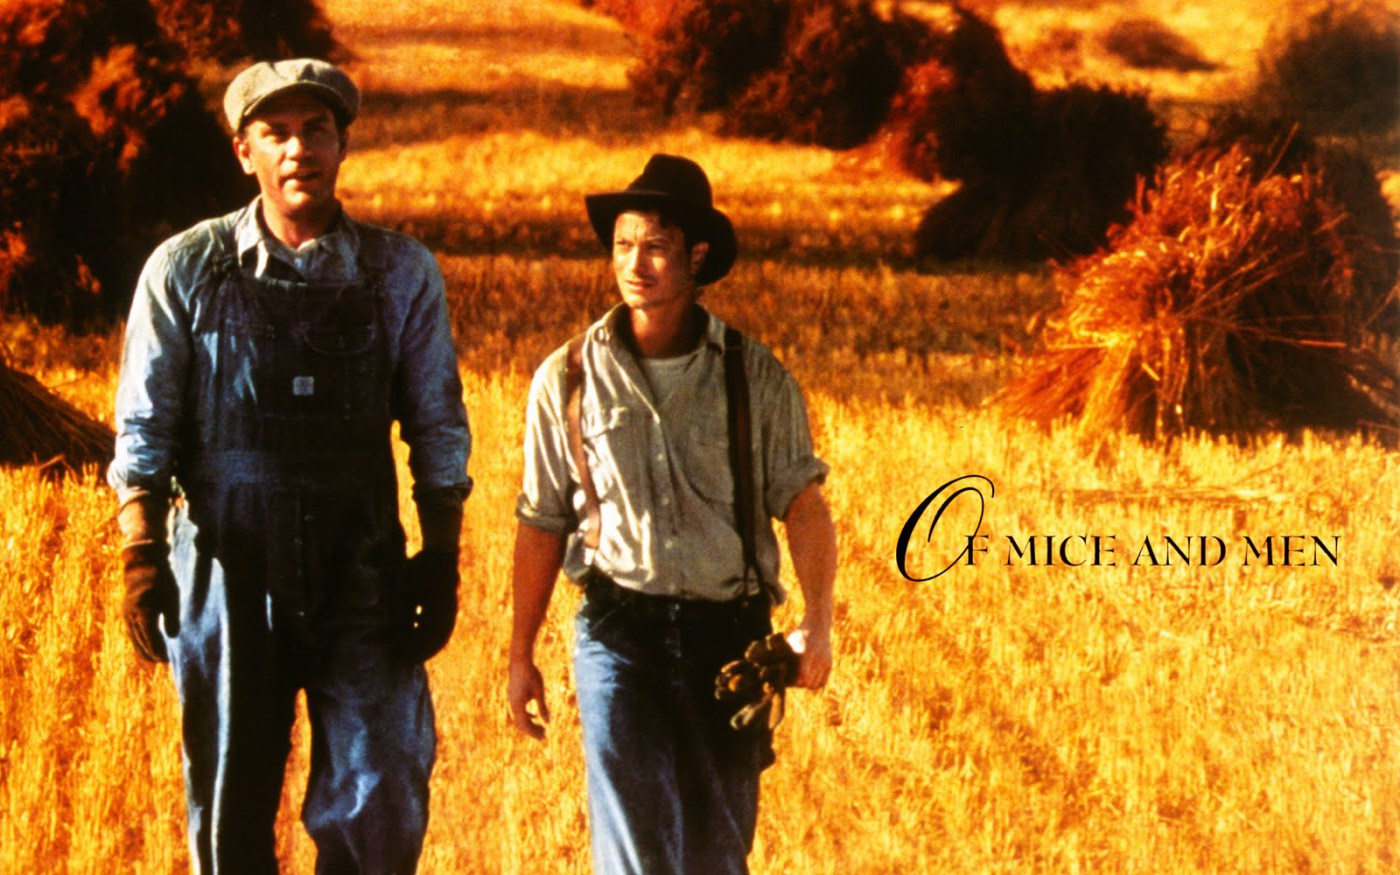 friendships mice and men Of mice and men has many themes presented by steinbeck, one of which is about friendship the novella shows the relationship between the protagonists, george and lennie, and showing how they try to achieve the american dream by working together.